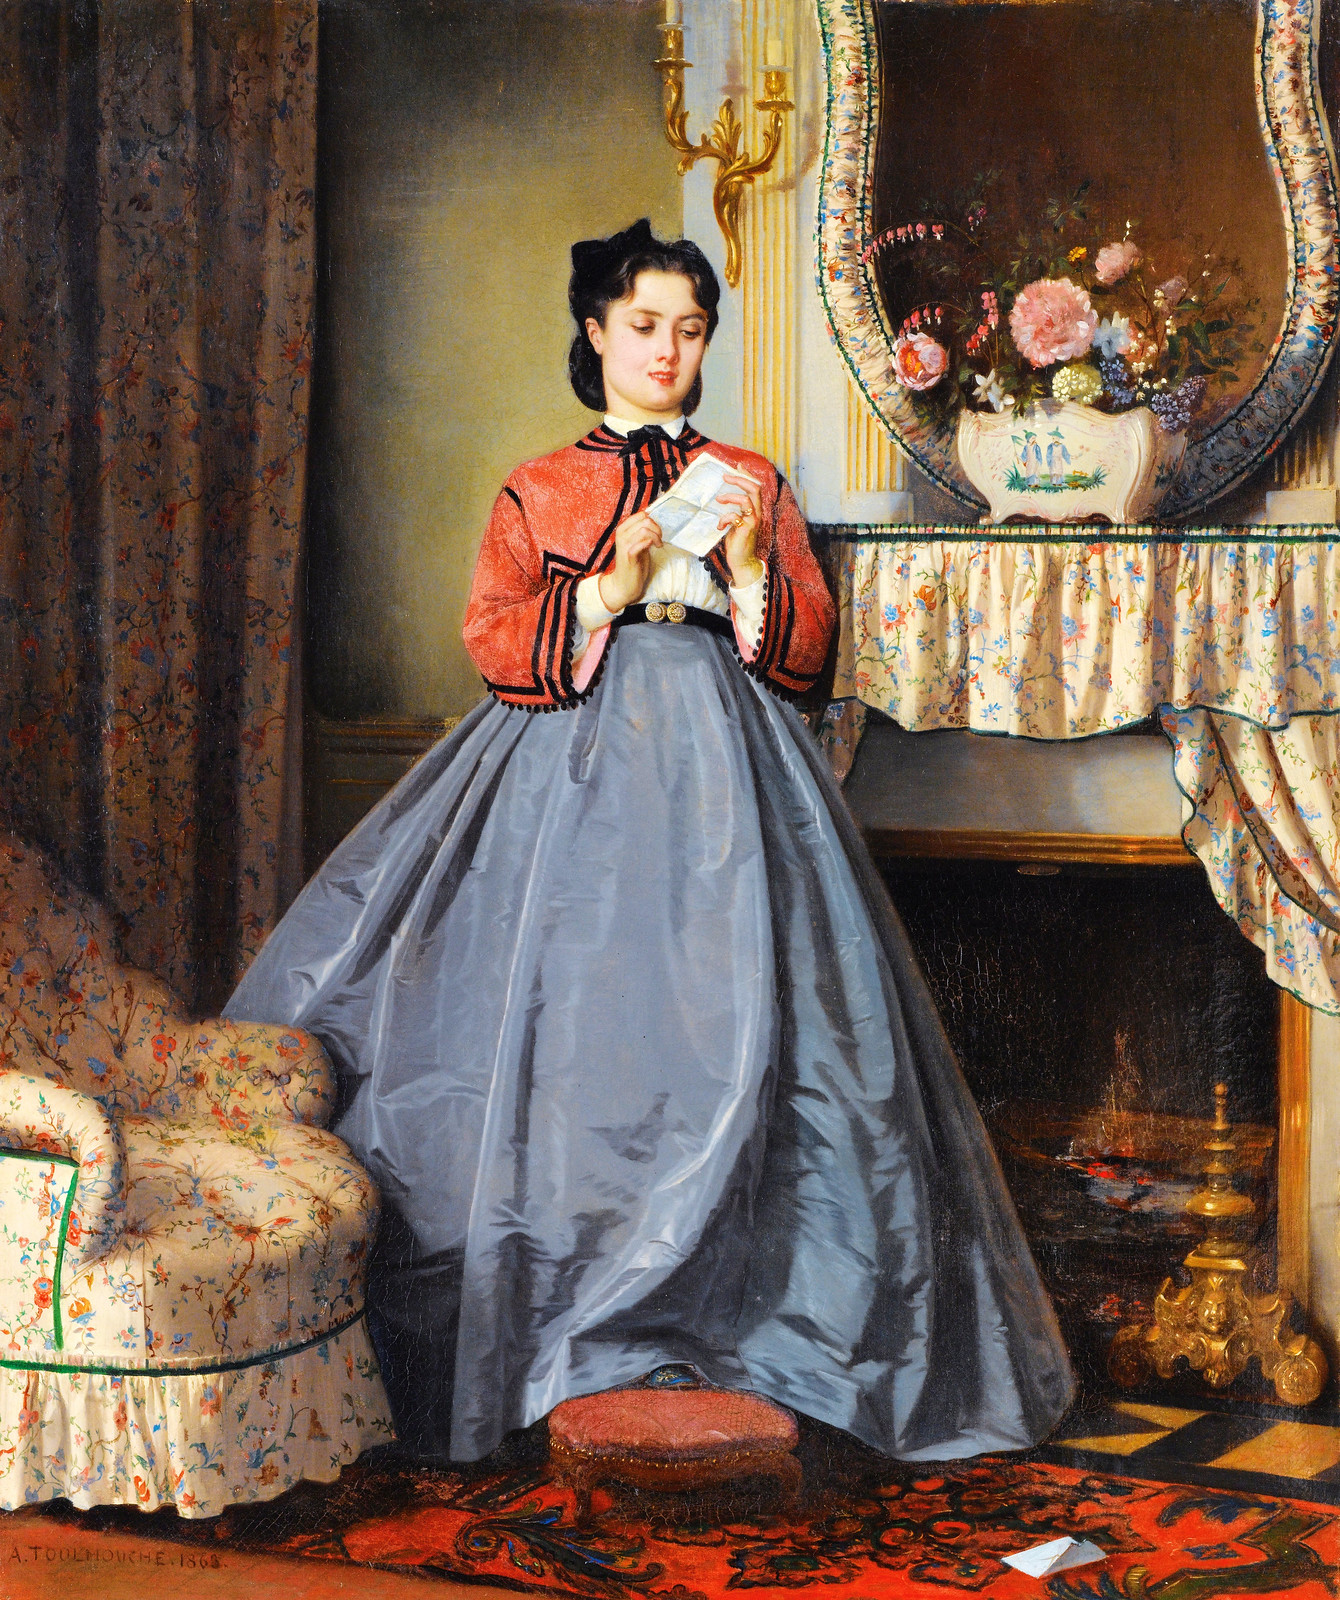 The Love Letter by Auguste Toulmouche, 1863